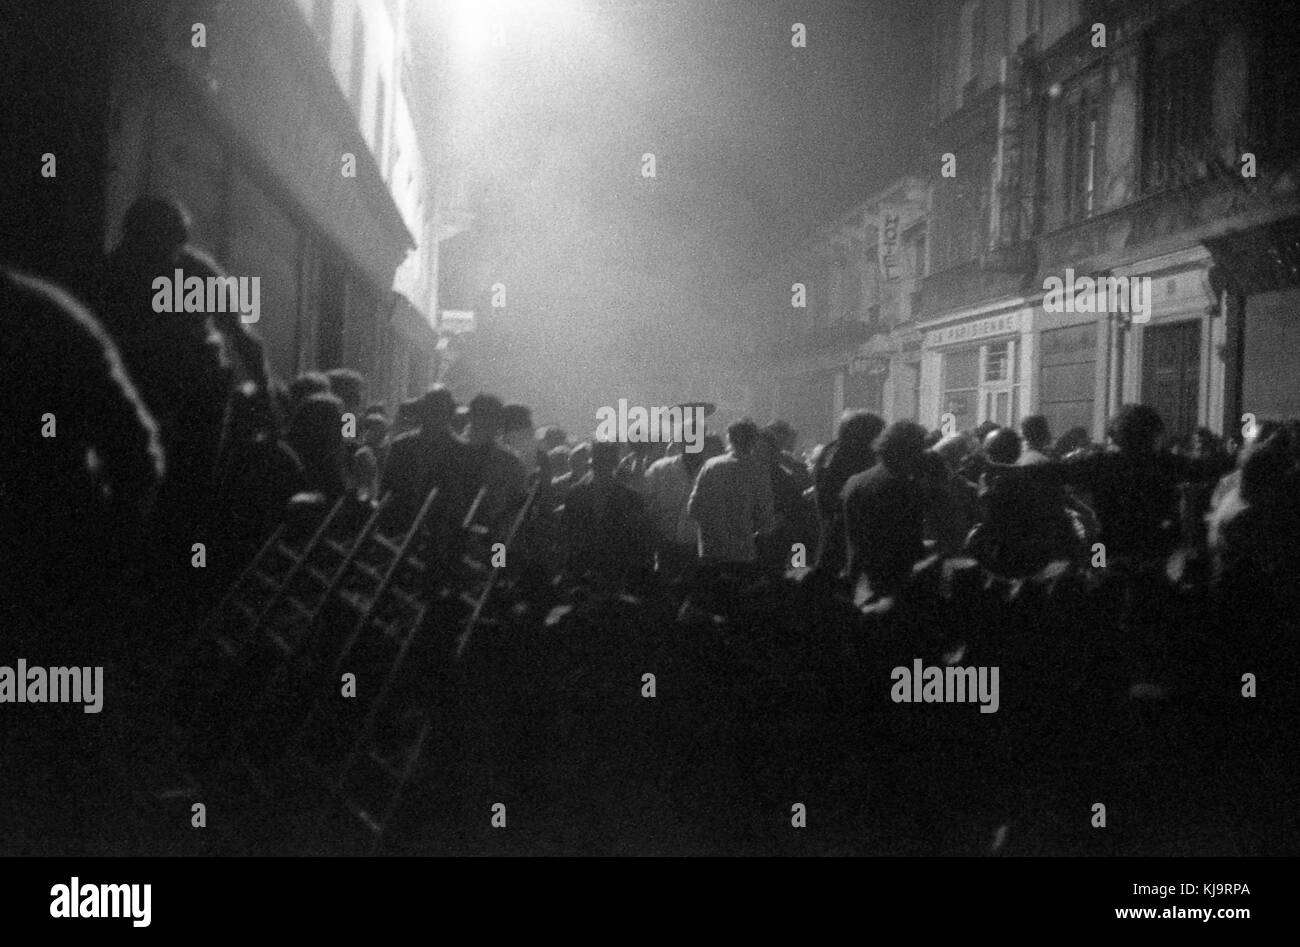 Philippe Gras / Le Pictorium -  May 1968 -  1968  -  France / Ile-de-France (region) / Paris  -  Crowd at night. - Stock Image